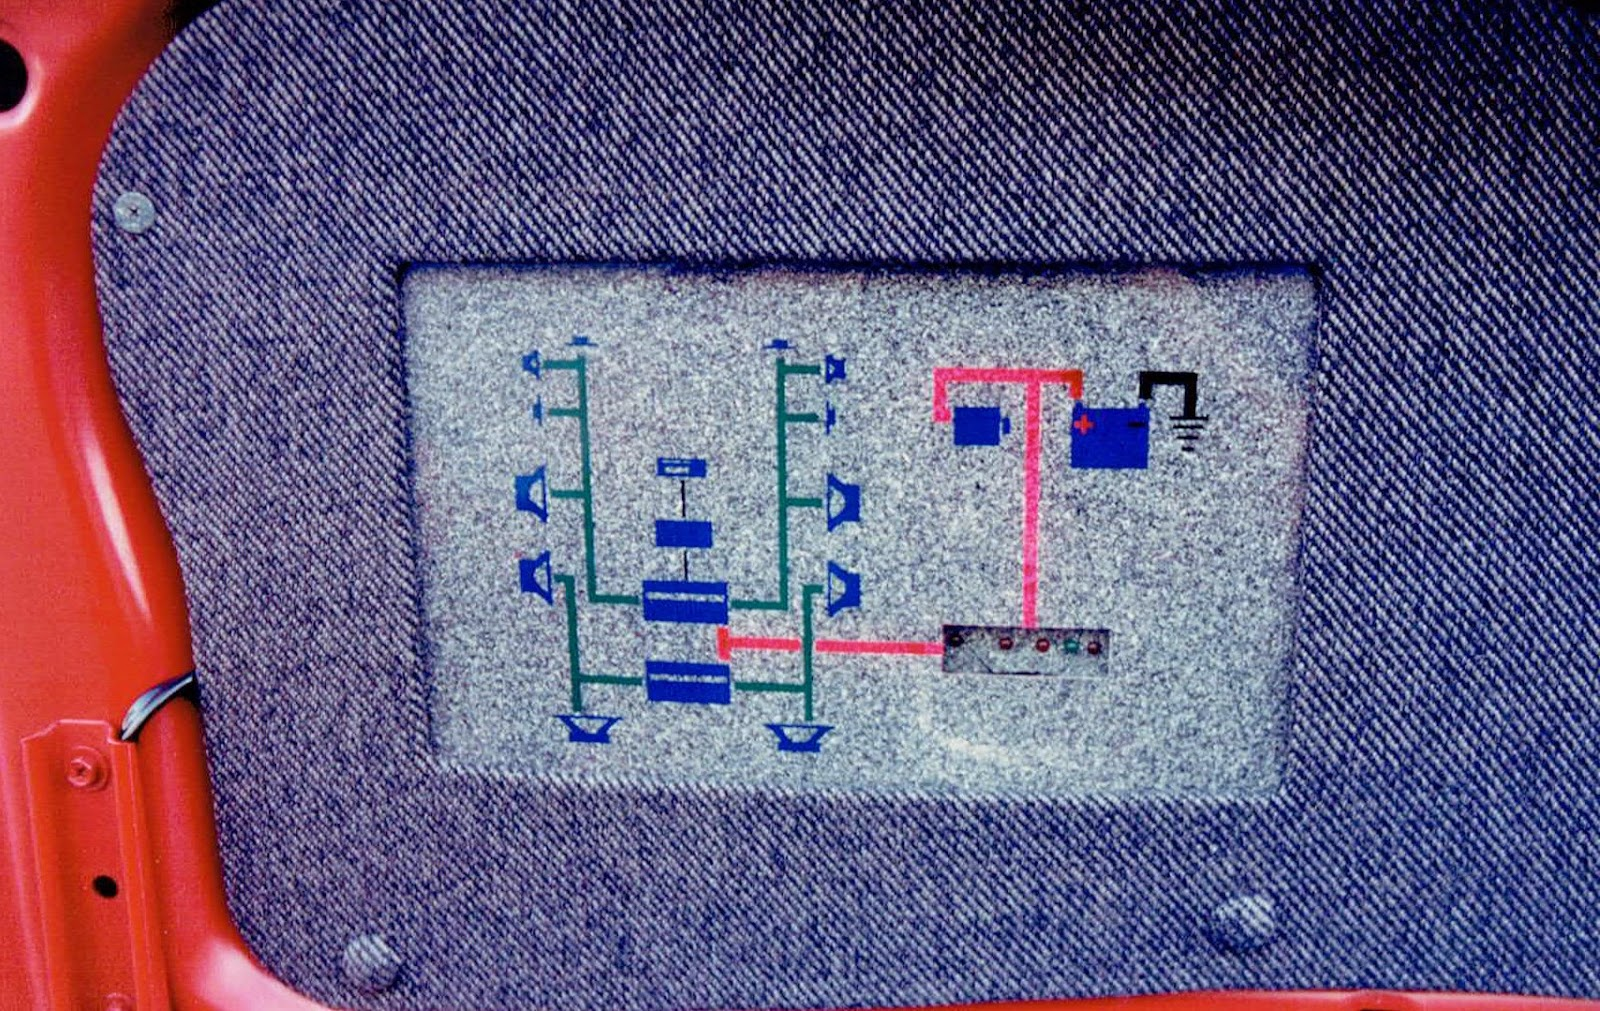 Photo of the system diagram under the truck lid in Alberto A Lopez's 1991 Red NIssan Sentra